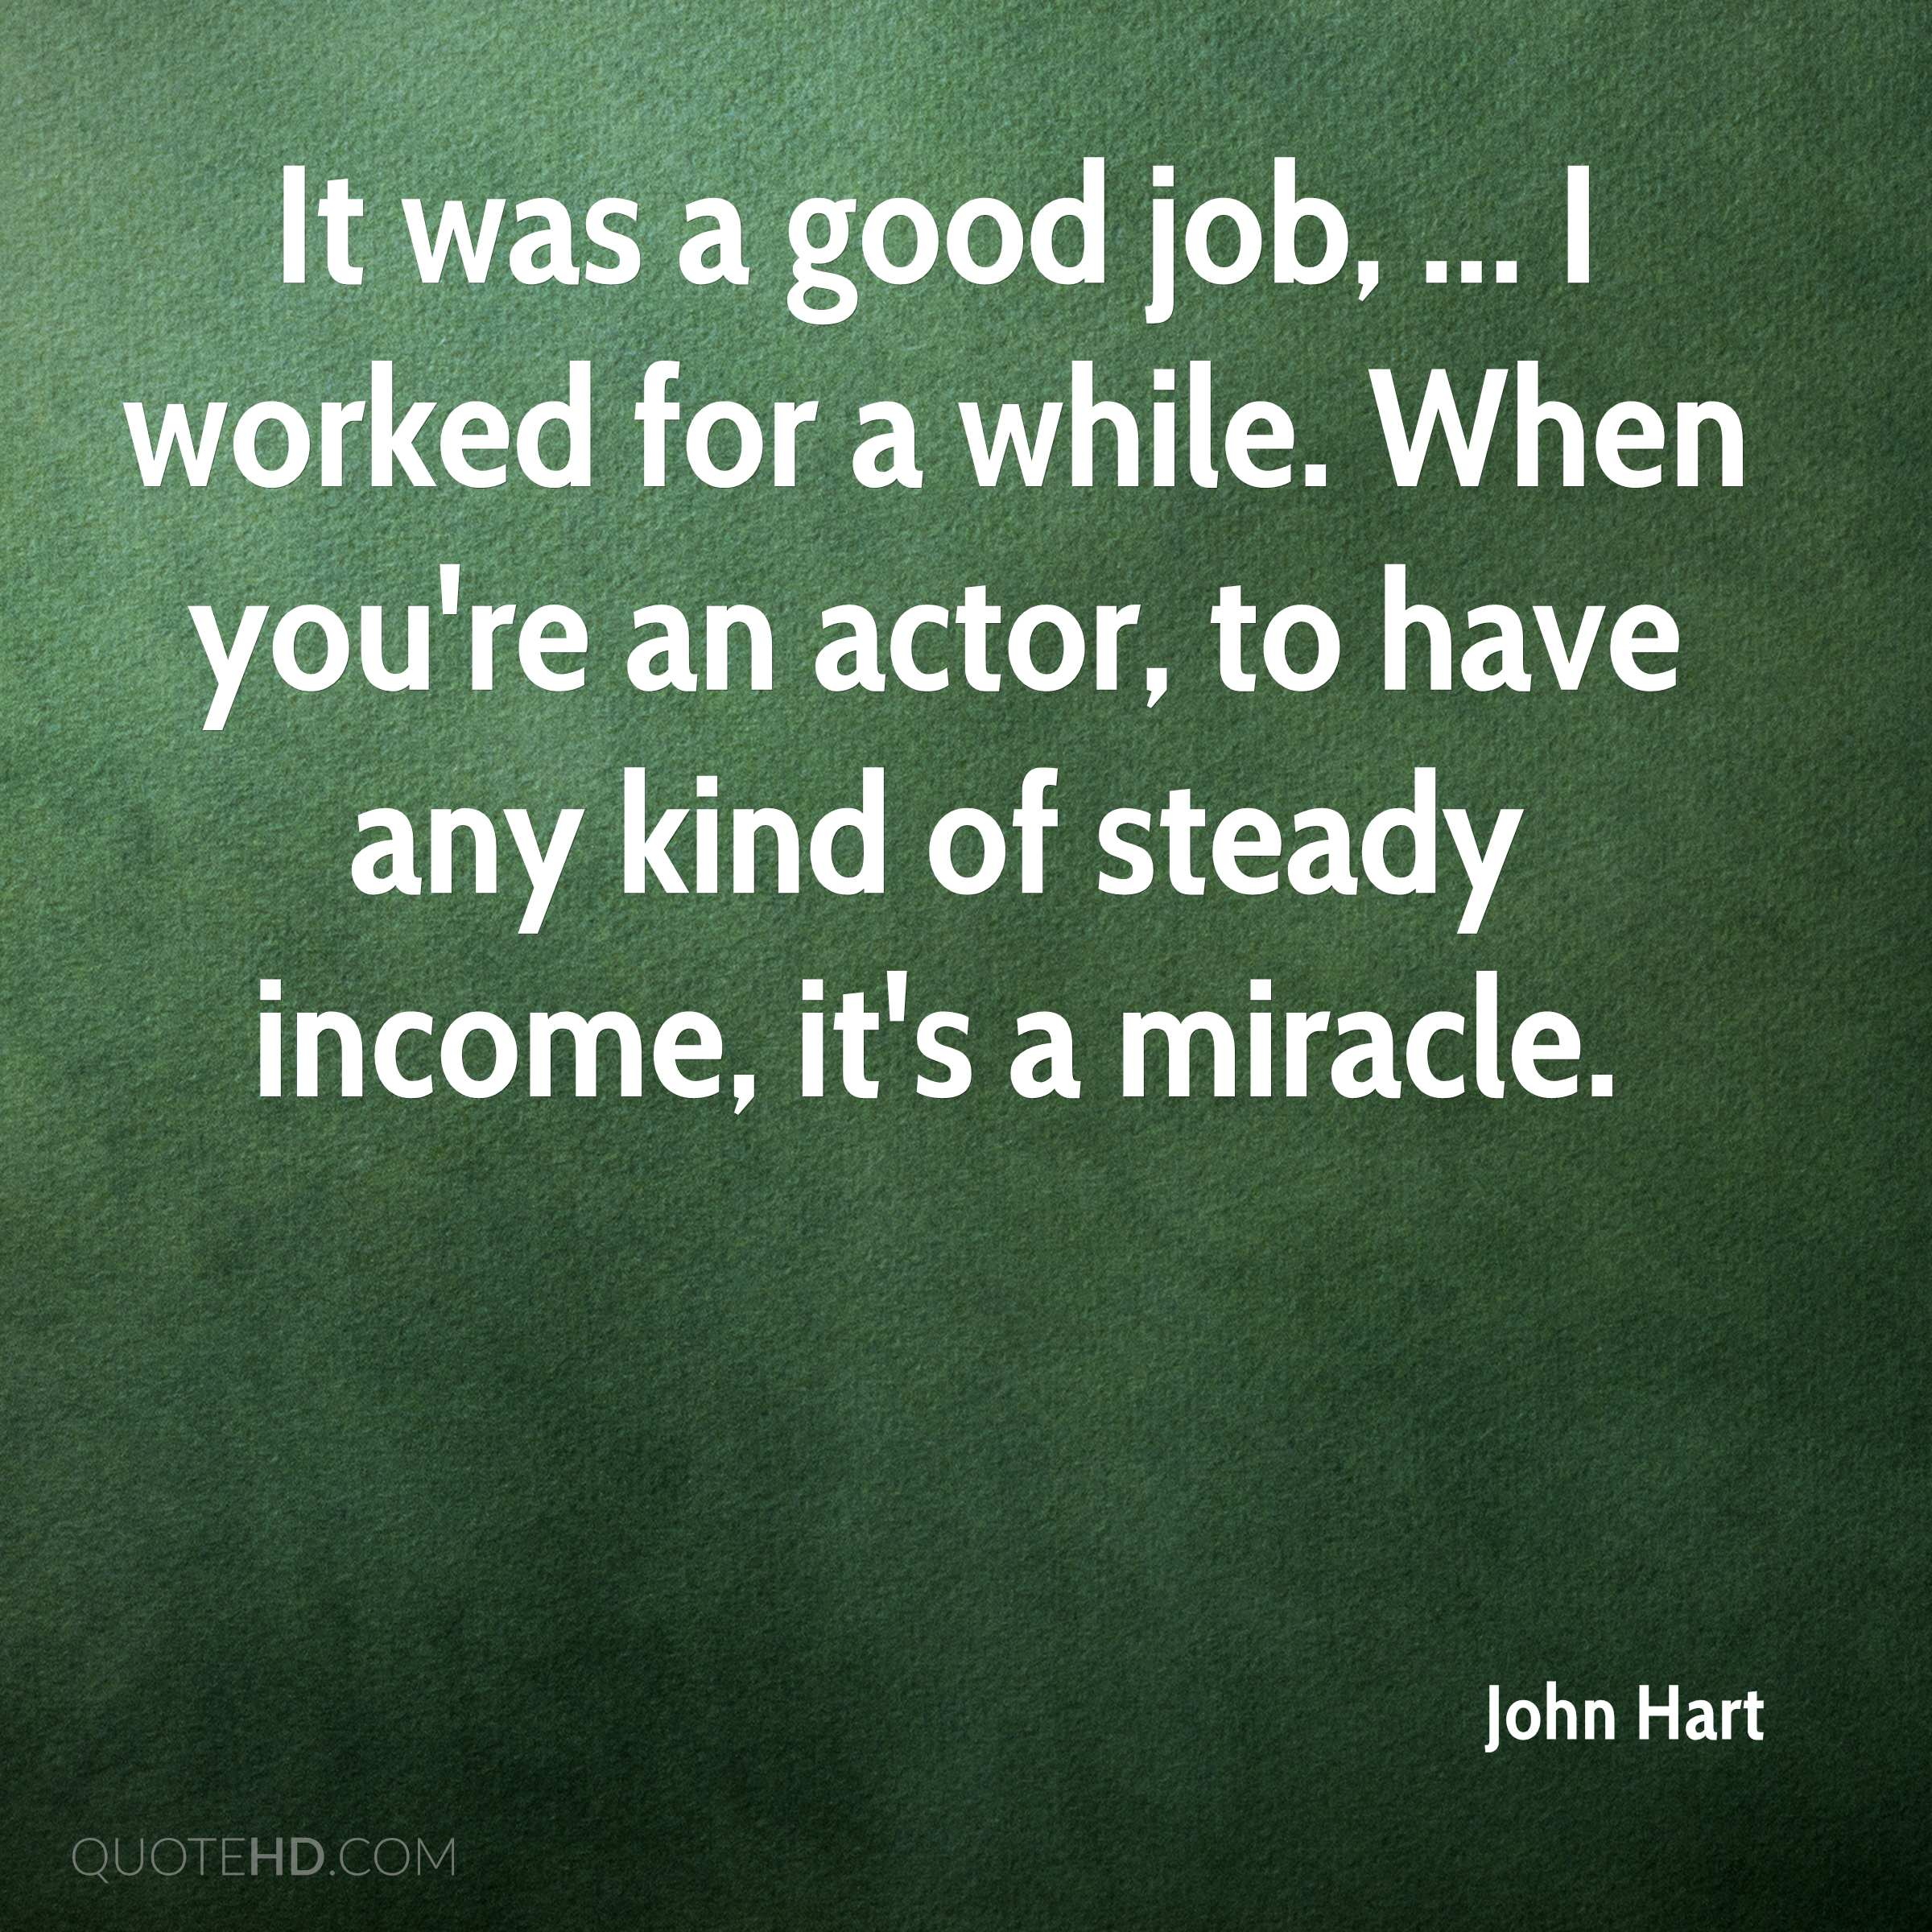 It was a good job, ... I worked for a while. When you're an actor, to have any kind of steady income, it's a miracle.